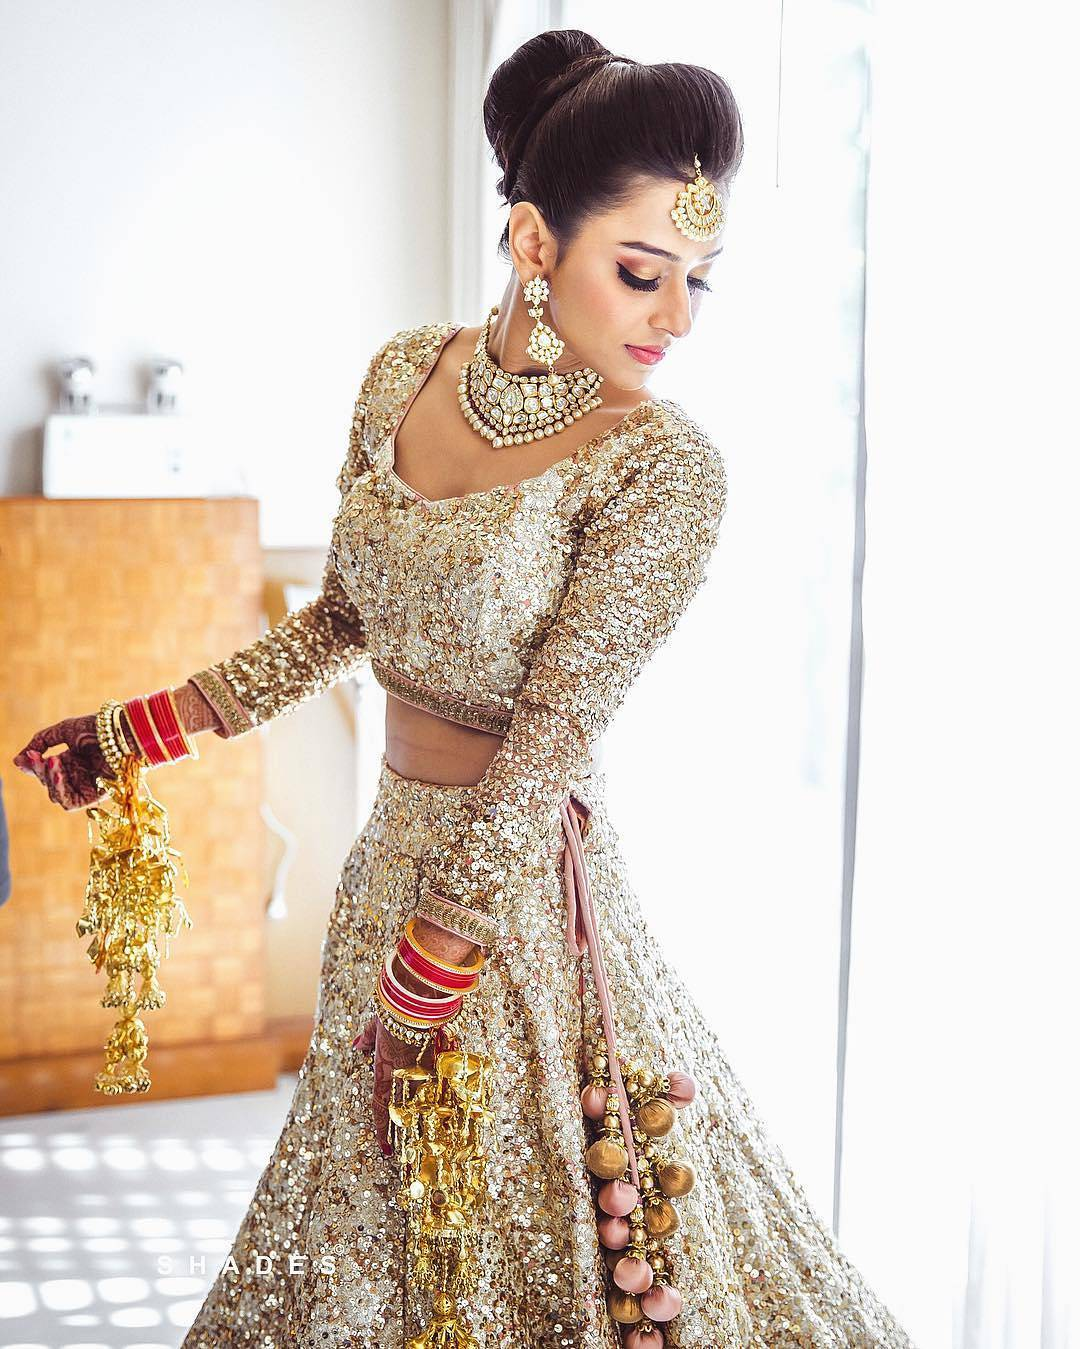 Gold Indian Wedding Dresses \u2013 Pemerintah Kota Ambon